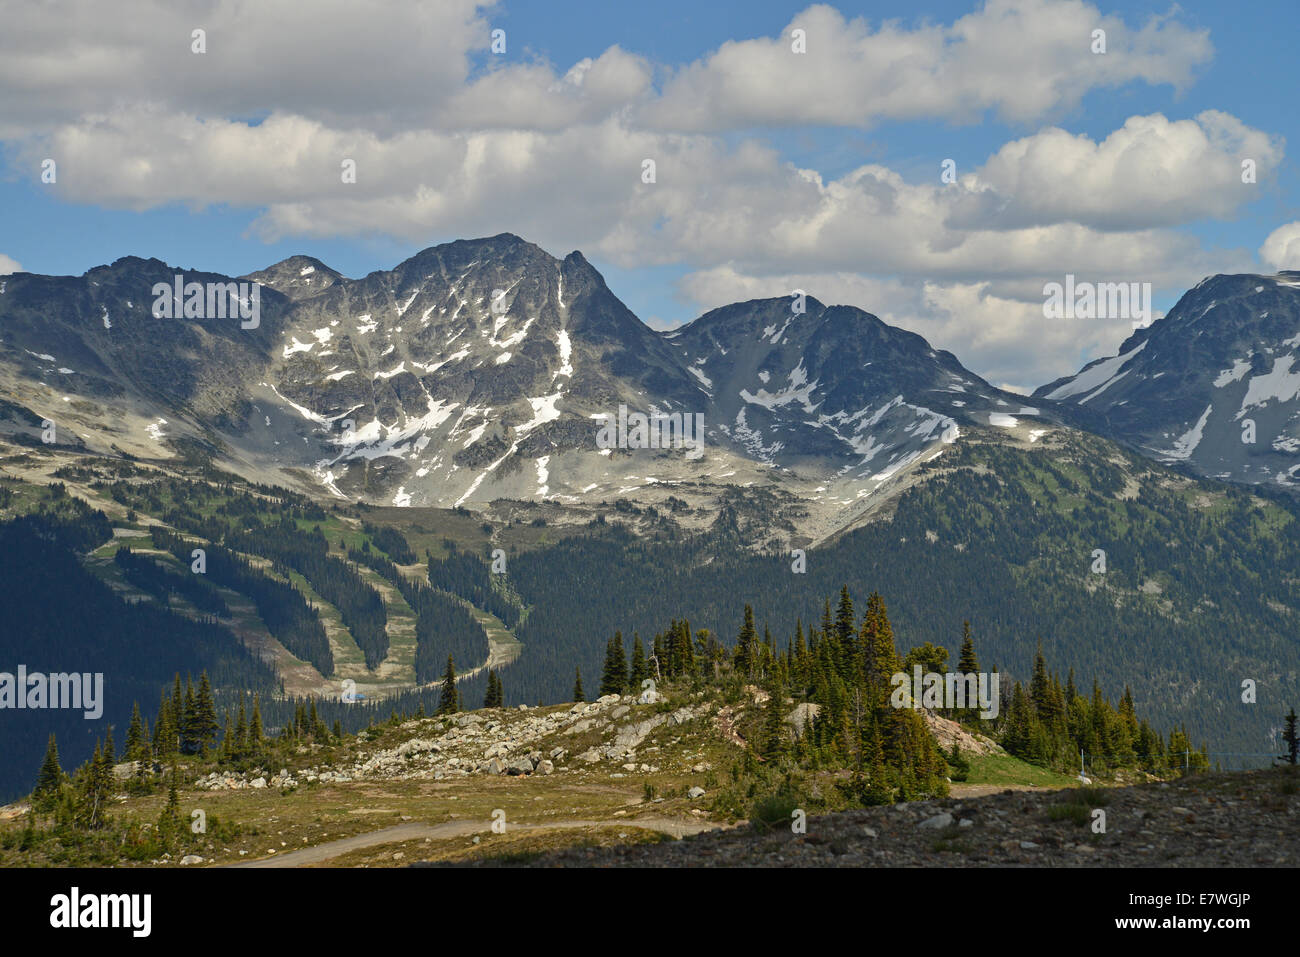 Snow covered peaks near Whistler Mountain. Whistler is one of the world's premier ski resorts and has hosted - Stock Image